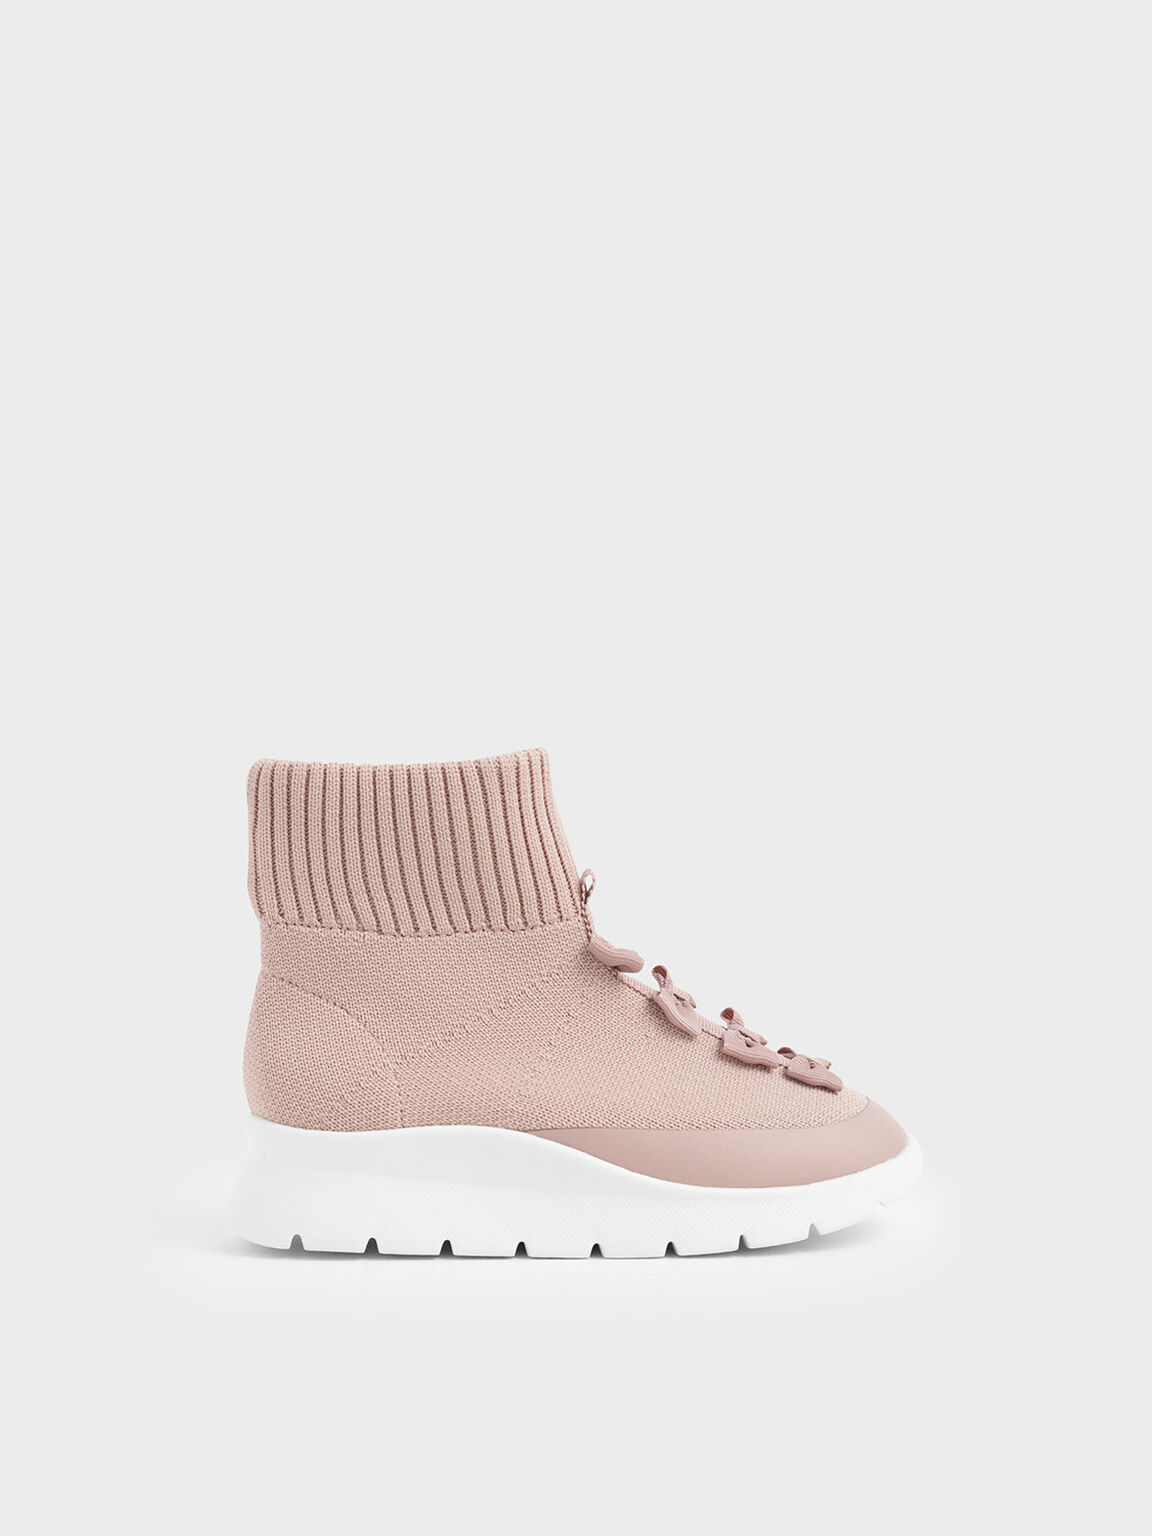 Girls' Knitted High Top Slip-On Sneakers, Pink, hi-res